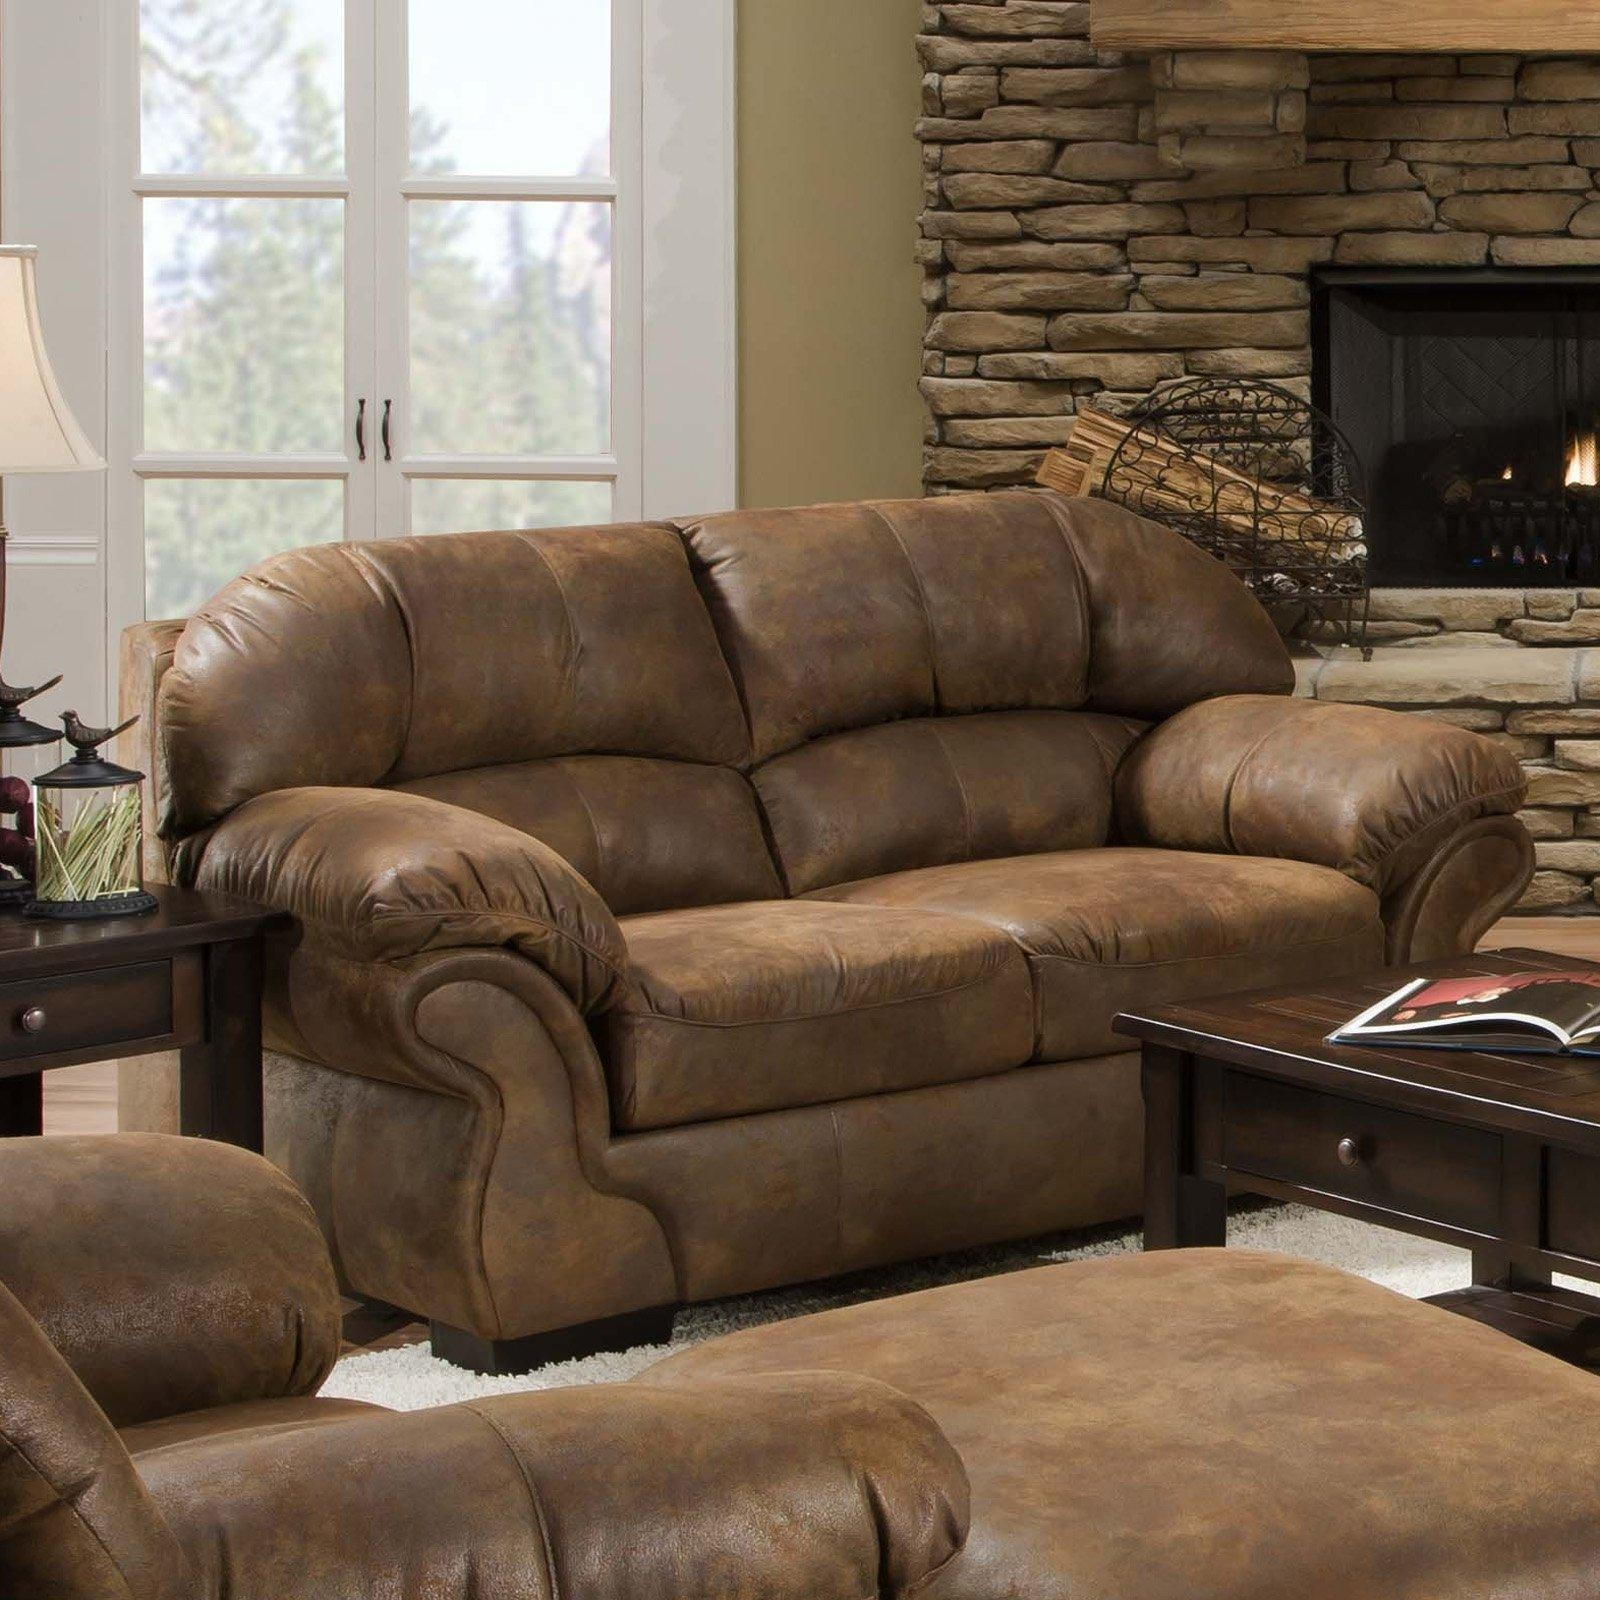 sofitalia leather sofa custom furniture slipcovers for sofas simmons microfiber ideas ...